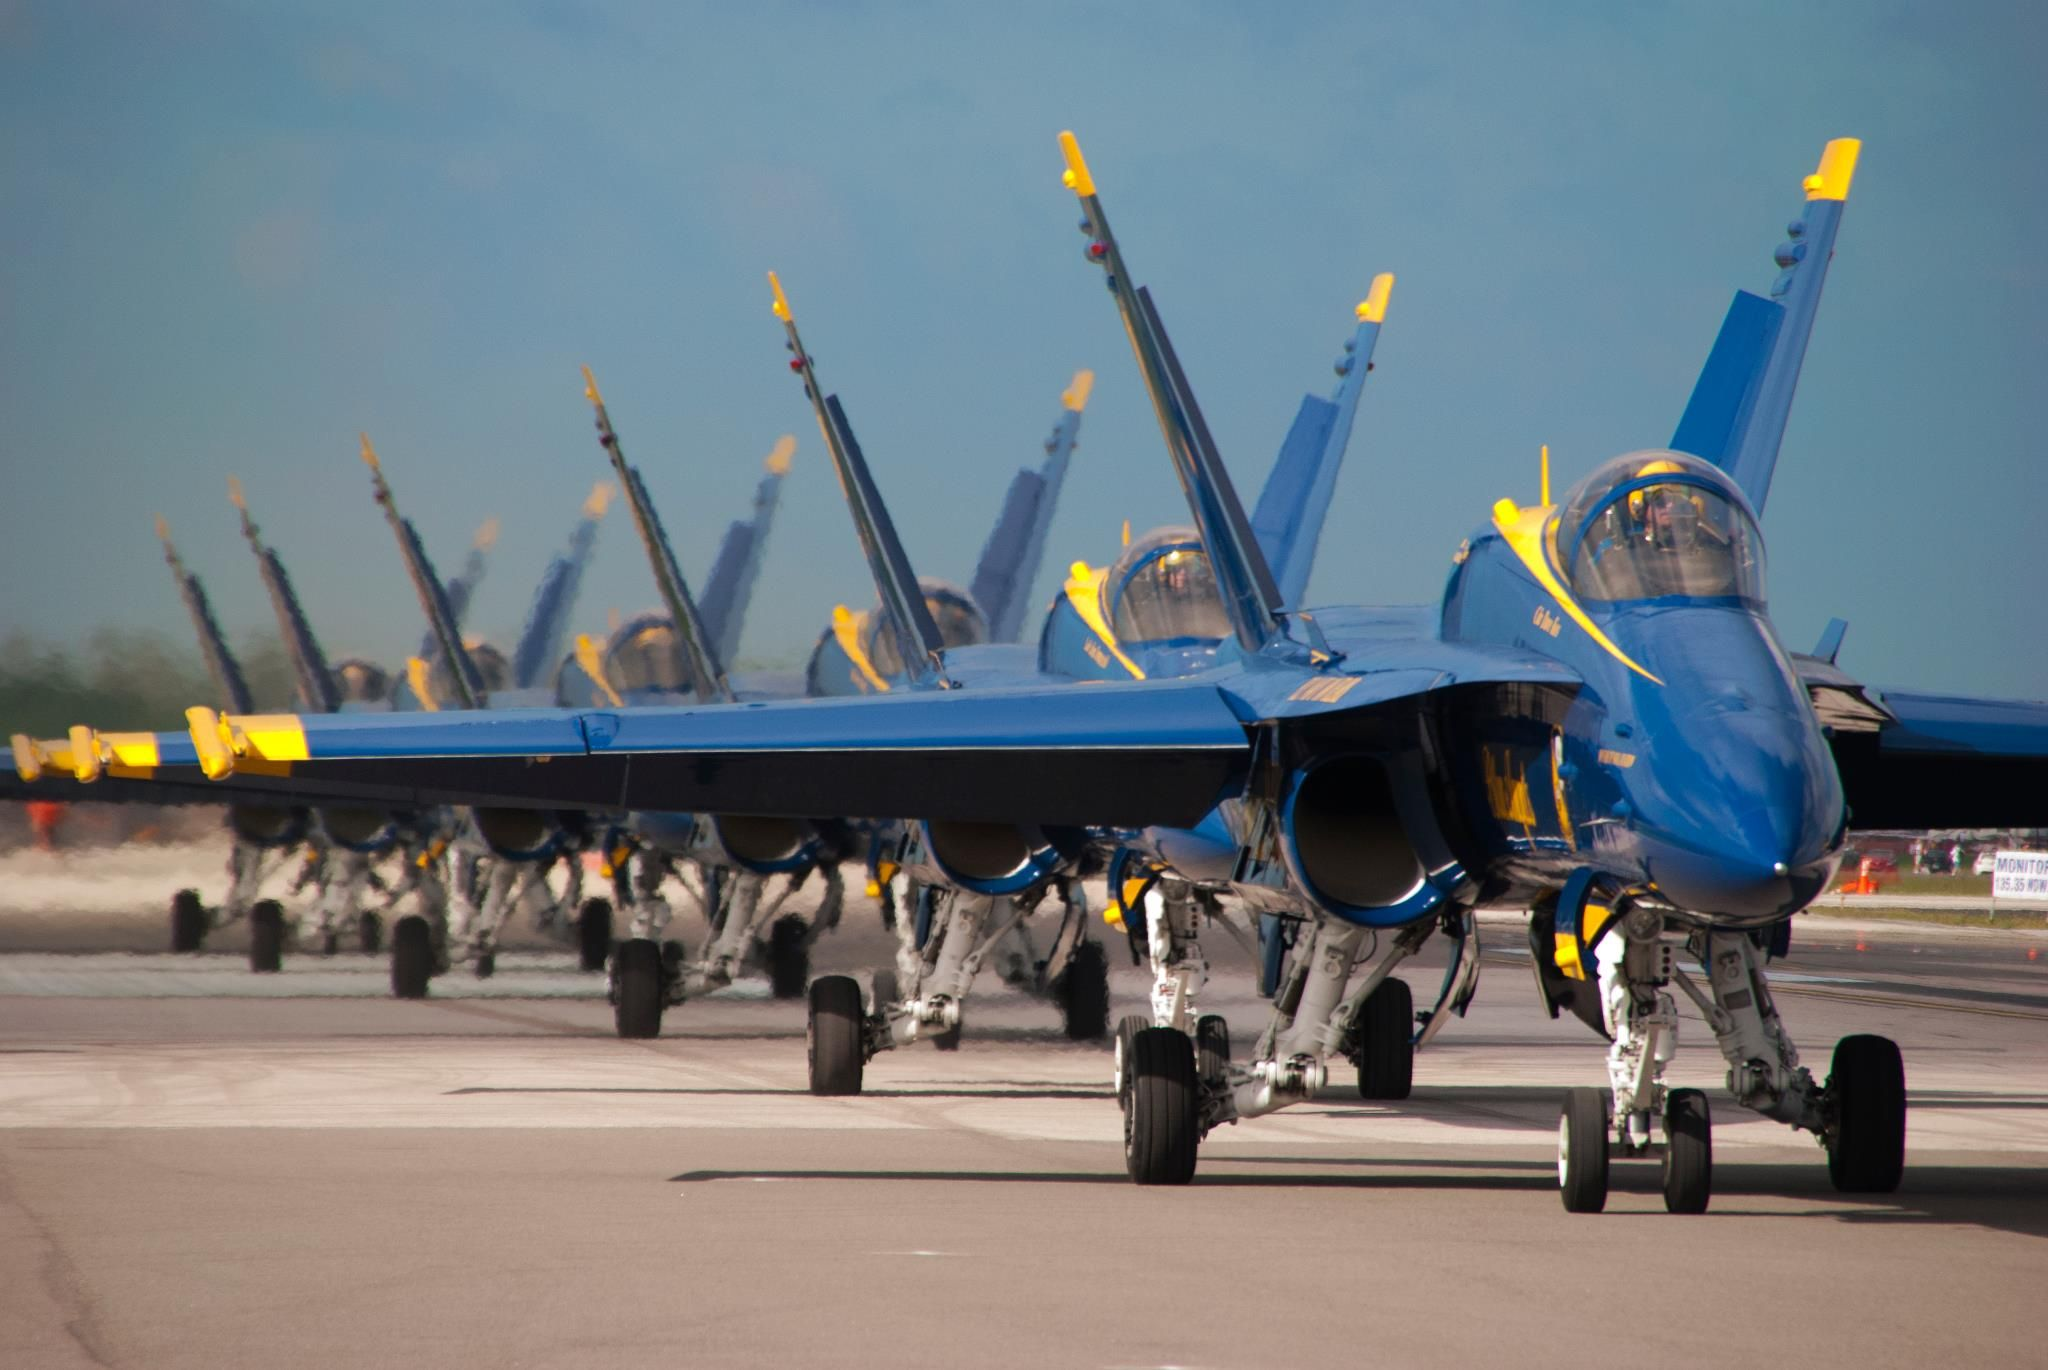 U.S. Navy Blue Angels ready for take off Blue angels air